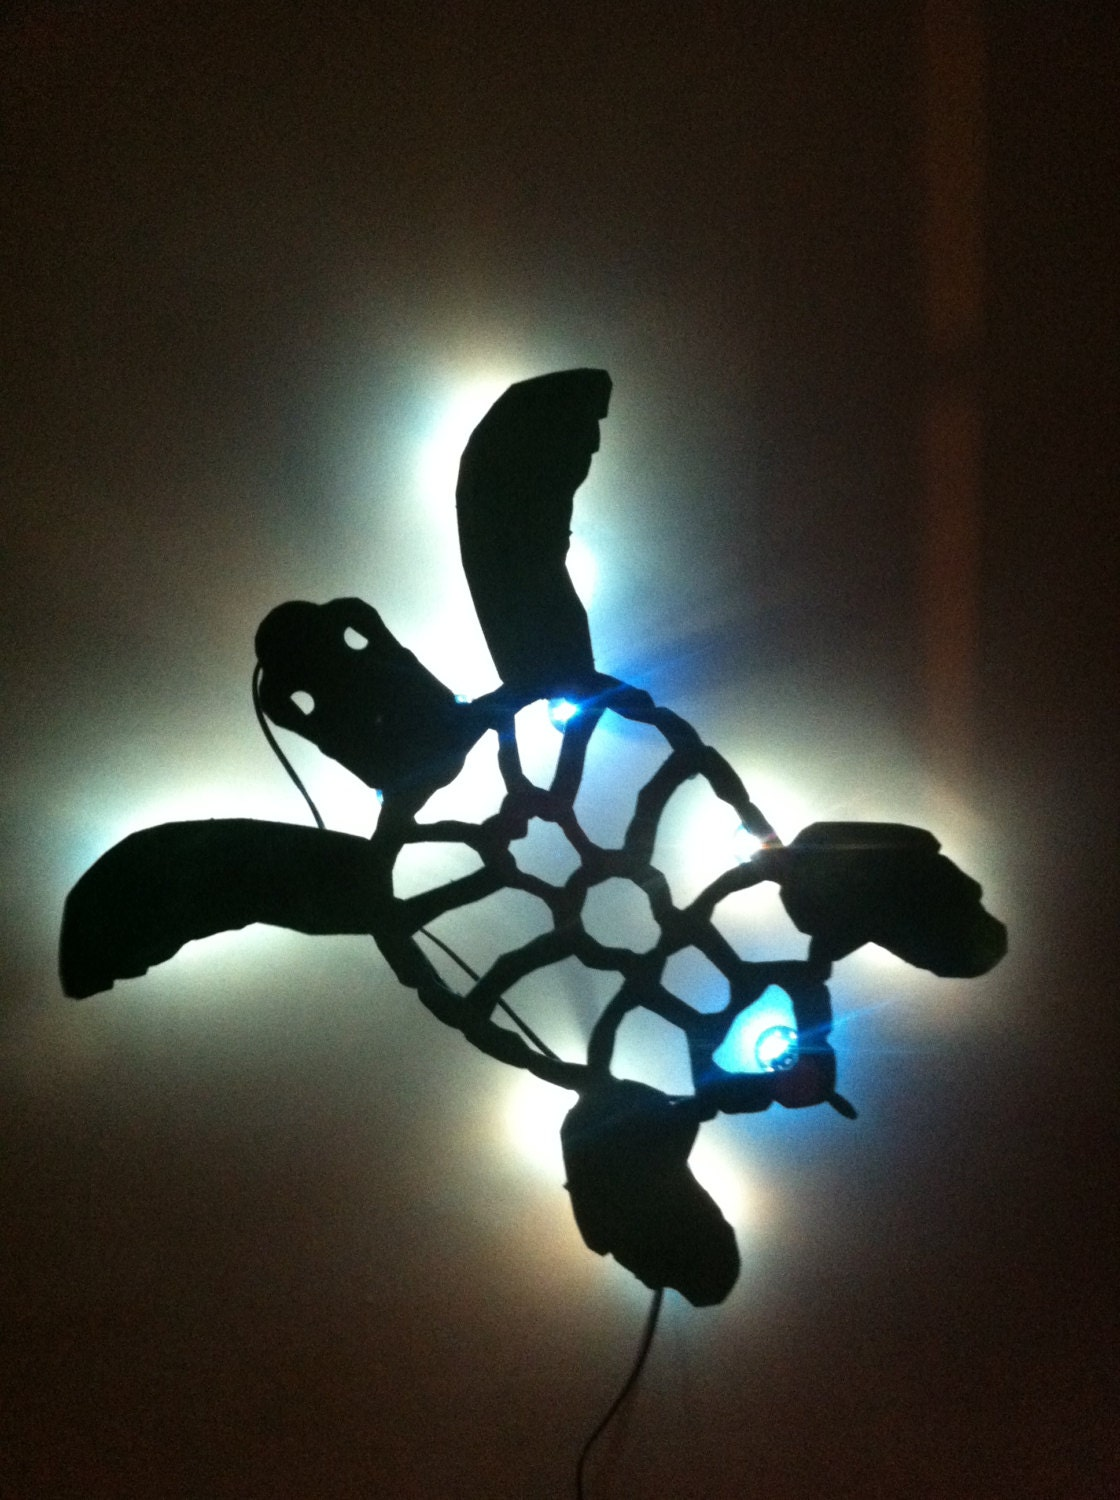 Sea turtle night light marquee sign back lite approx 24 - Turtle nite light ...